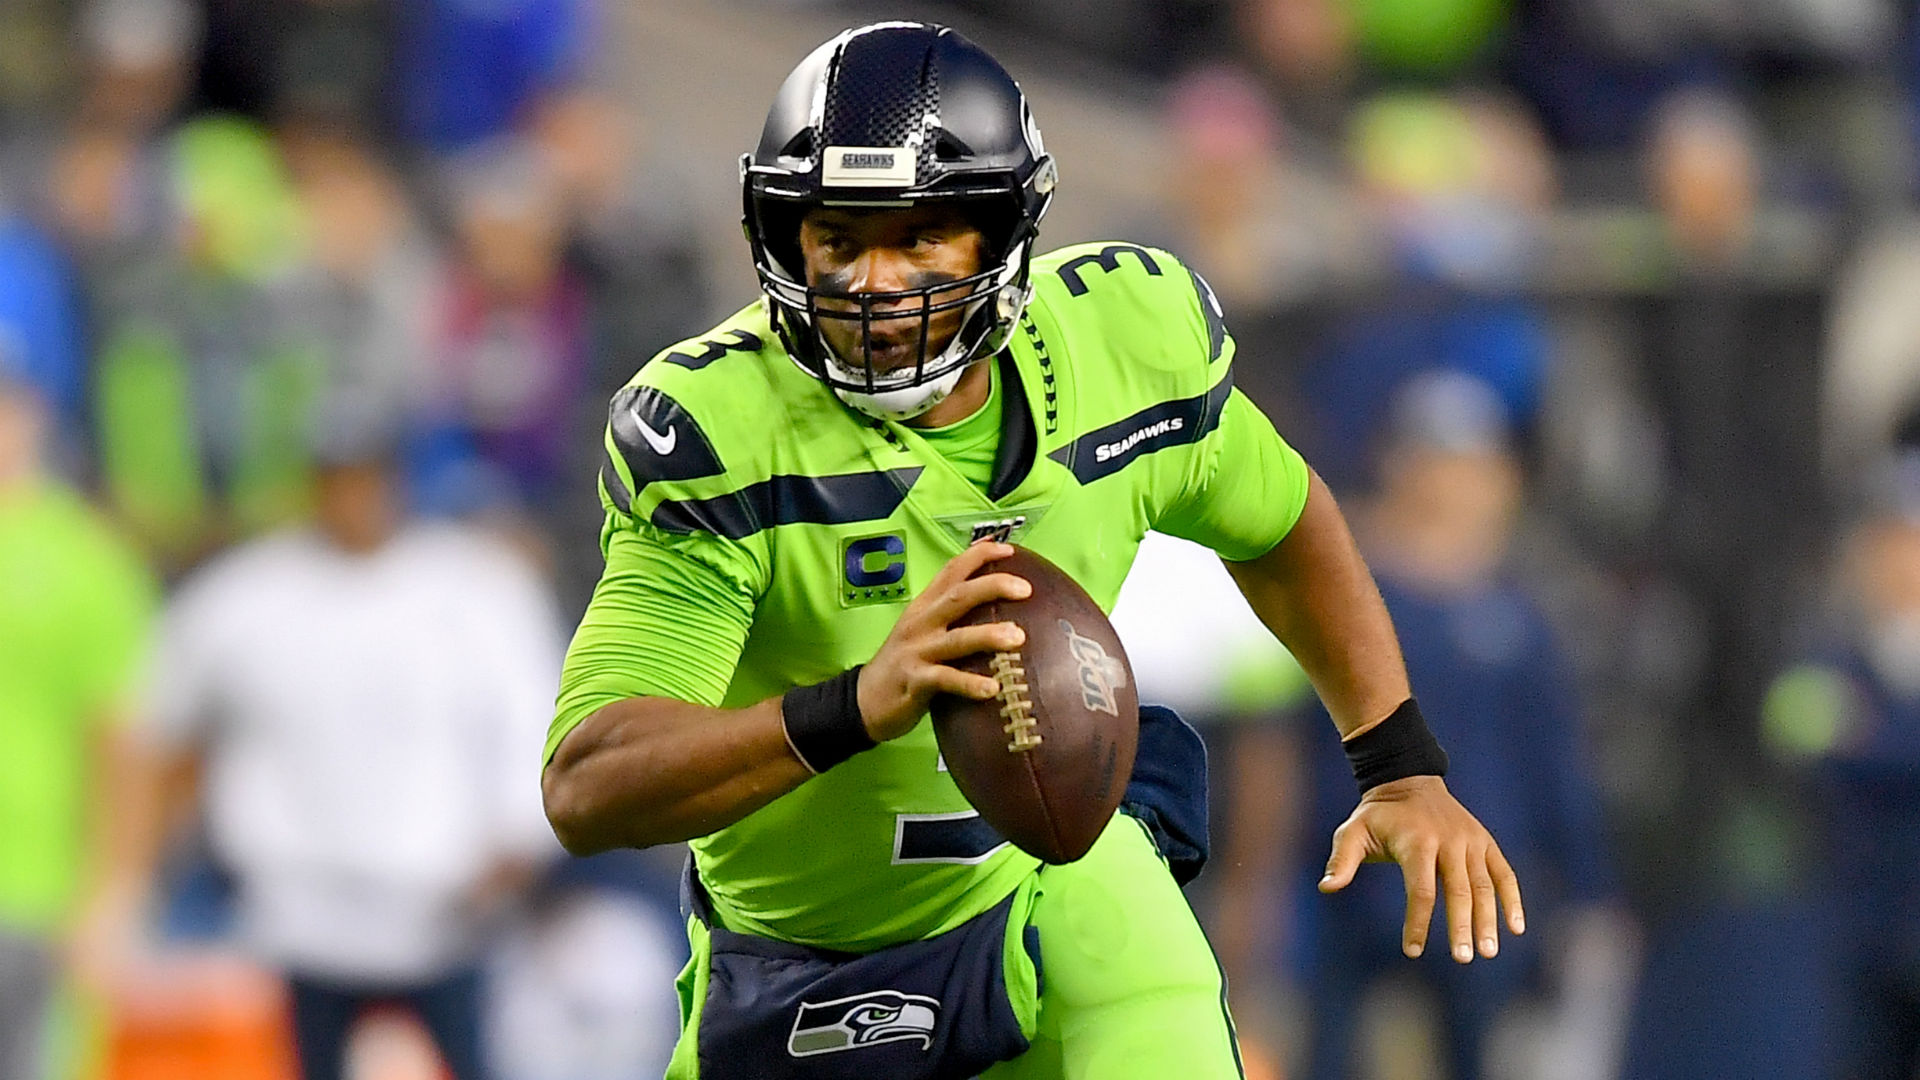 NFL predictions 2020: Seahawks final record projection, Super Bowl odds more to know